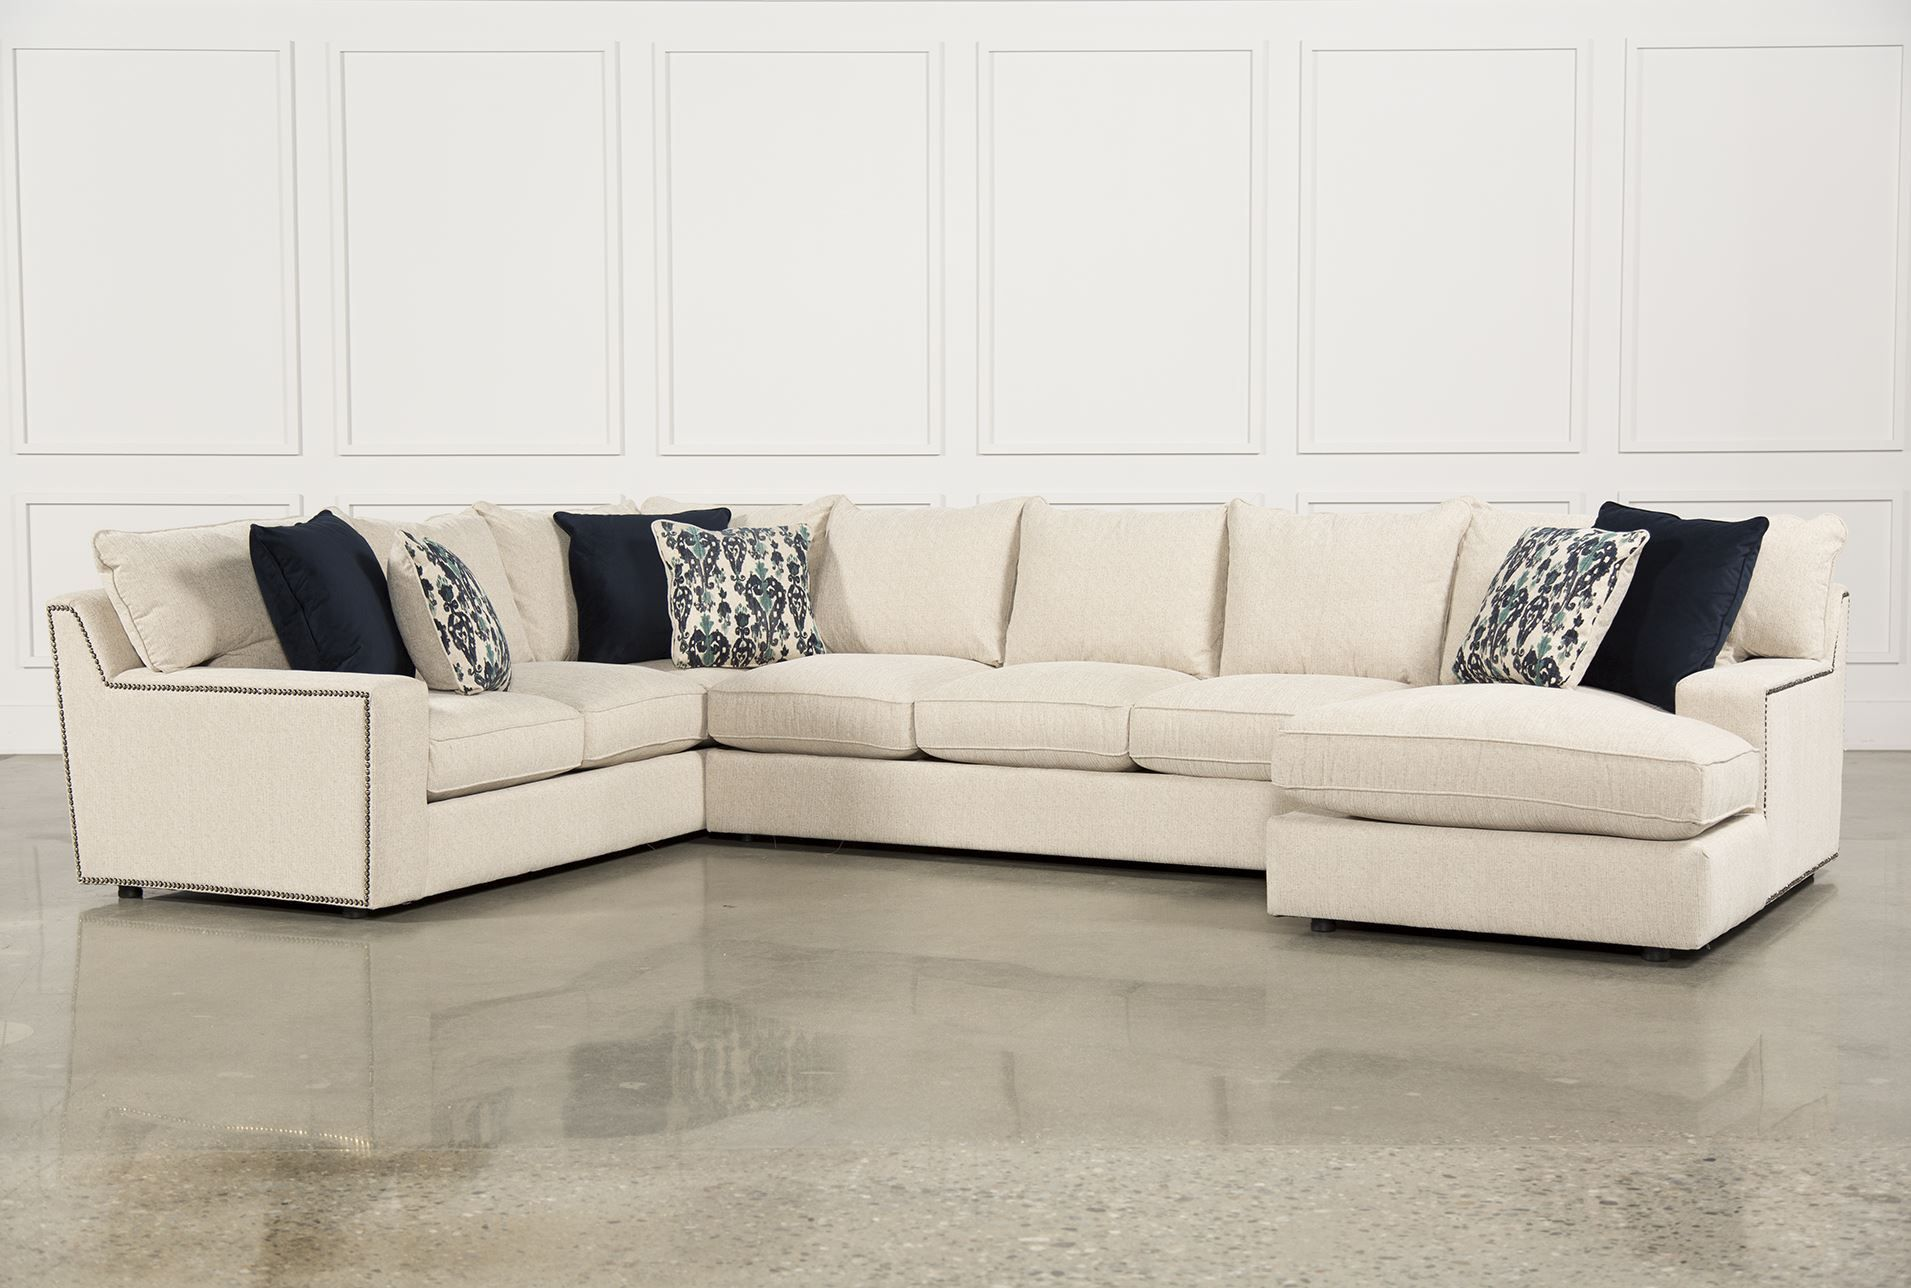 Rennell 3 Piece Sectional W/Raf Chaise, Sofas | Living rooms, Living ...